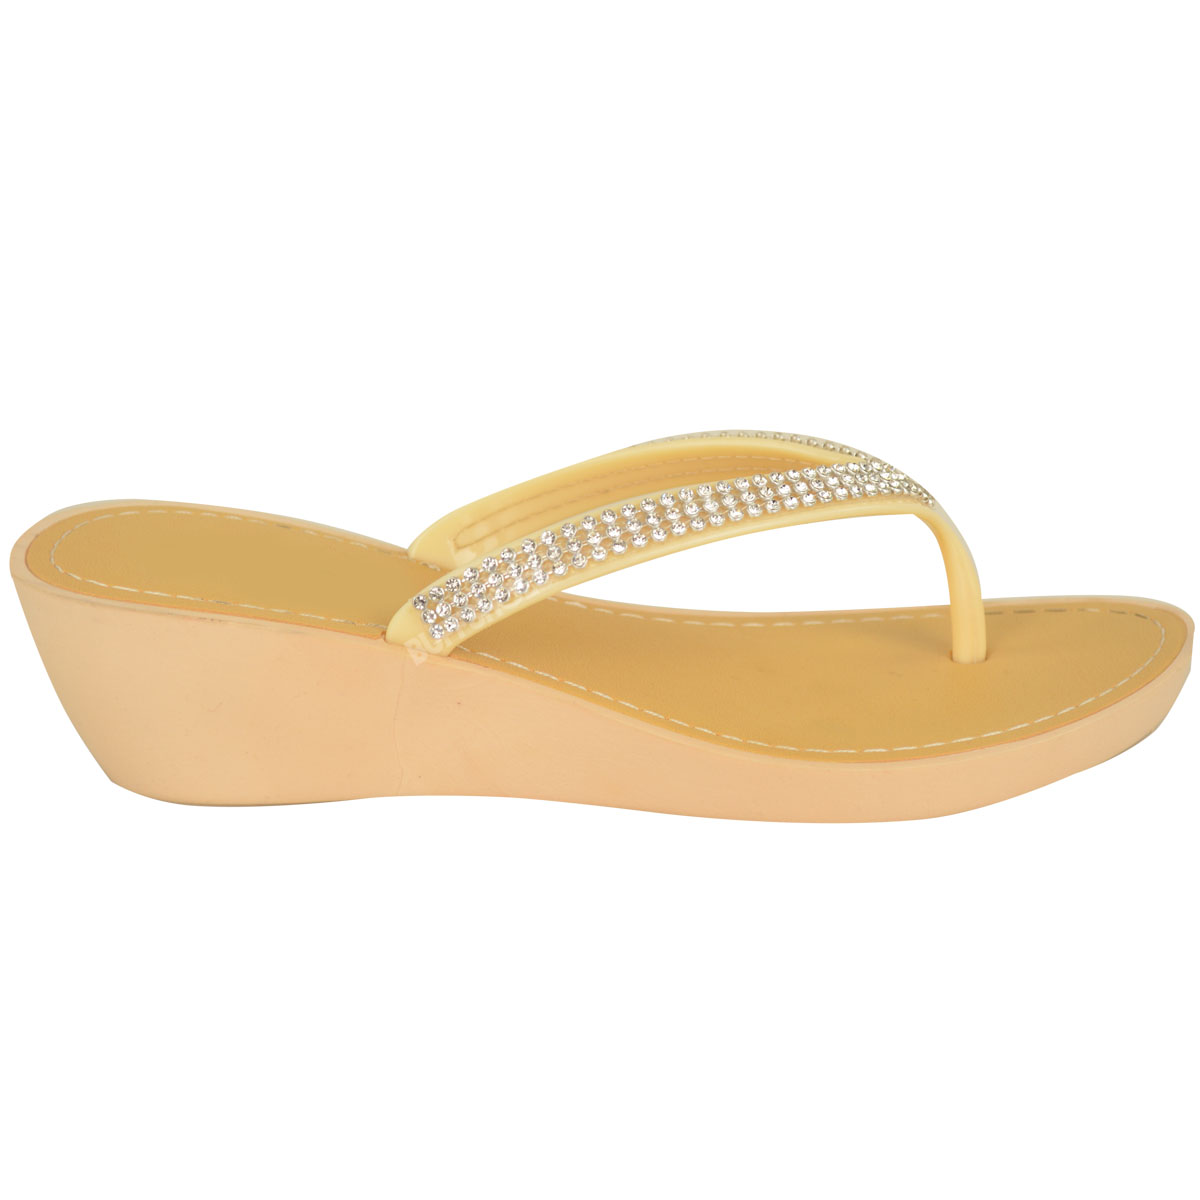 NEW-JELLY-SANDALS-WOMENS-LADIES-DIAMANTE-SUMMER-HOLIDAY-COMFORTS-FLIP-FLOPS-SIZE thumbnail 22